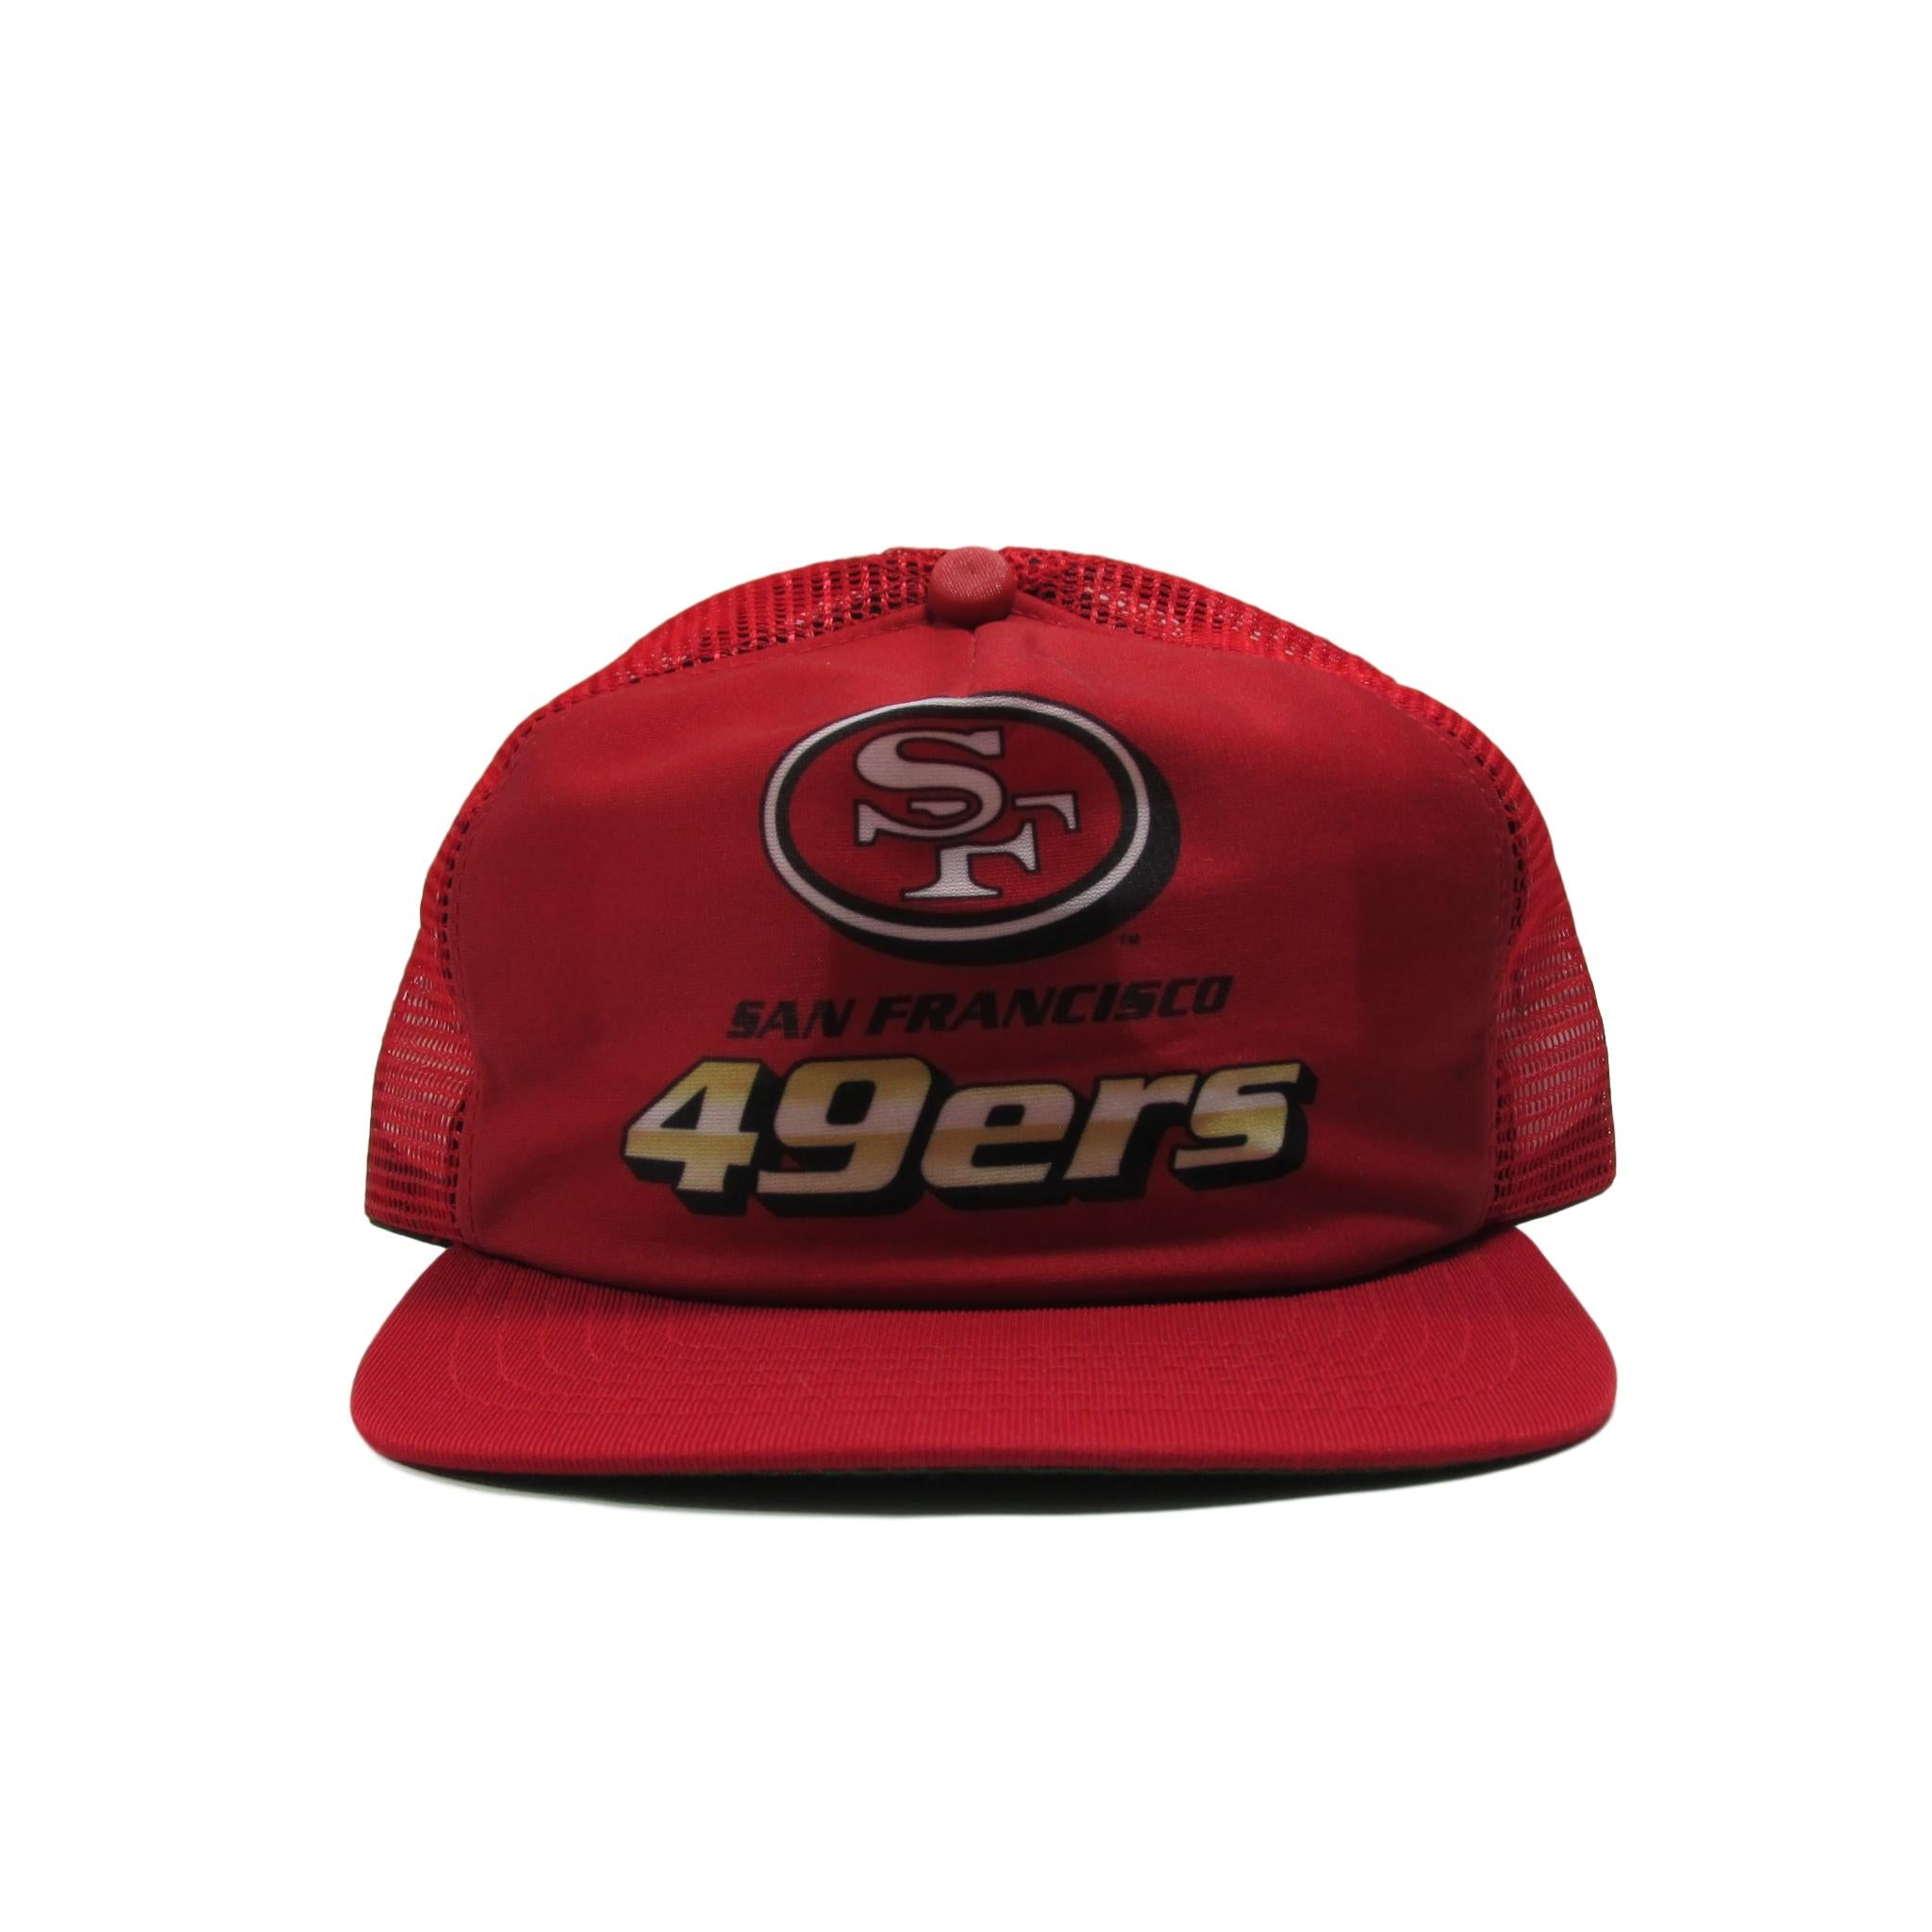 San Francisco 49ers Original Football Trucker Snapback Hat New Era